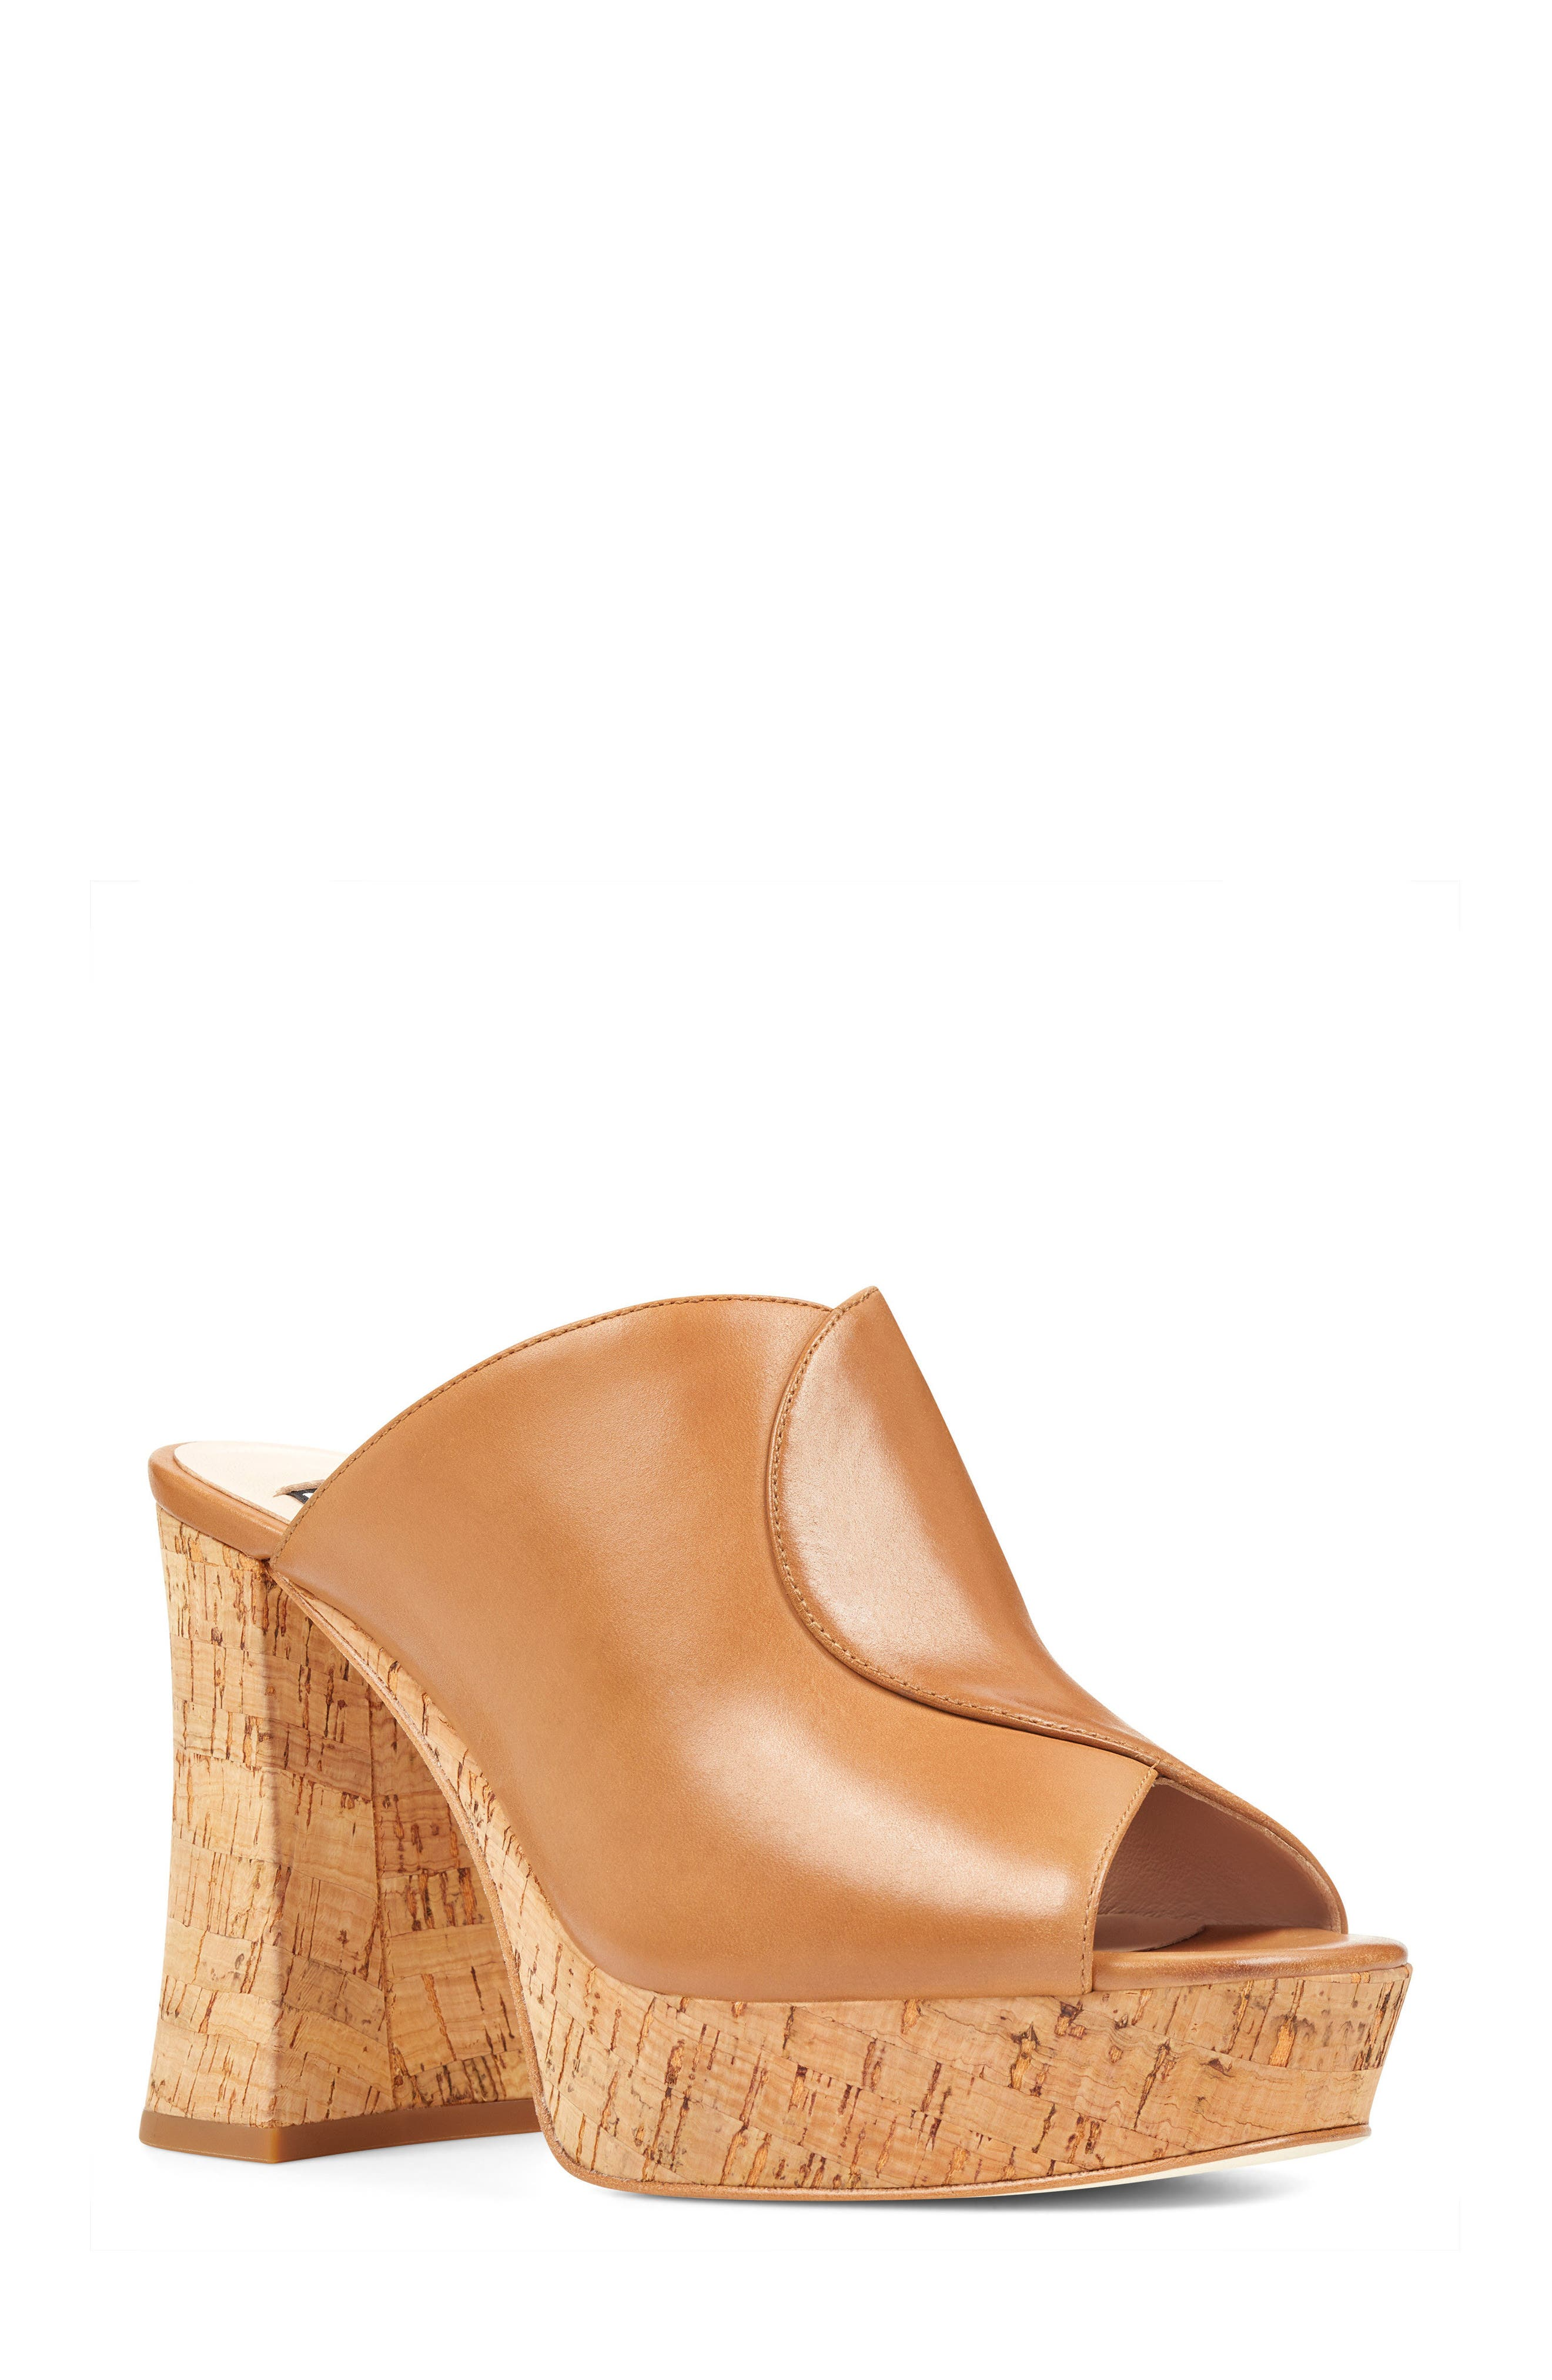 Nine West Lisana - 40th Anniversary Capsule Collection Platform Slide Sandal (Women)